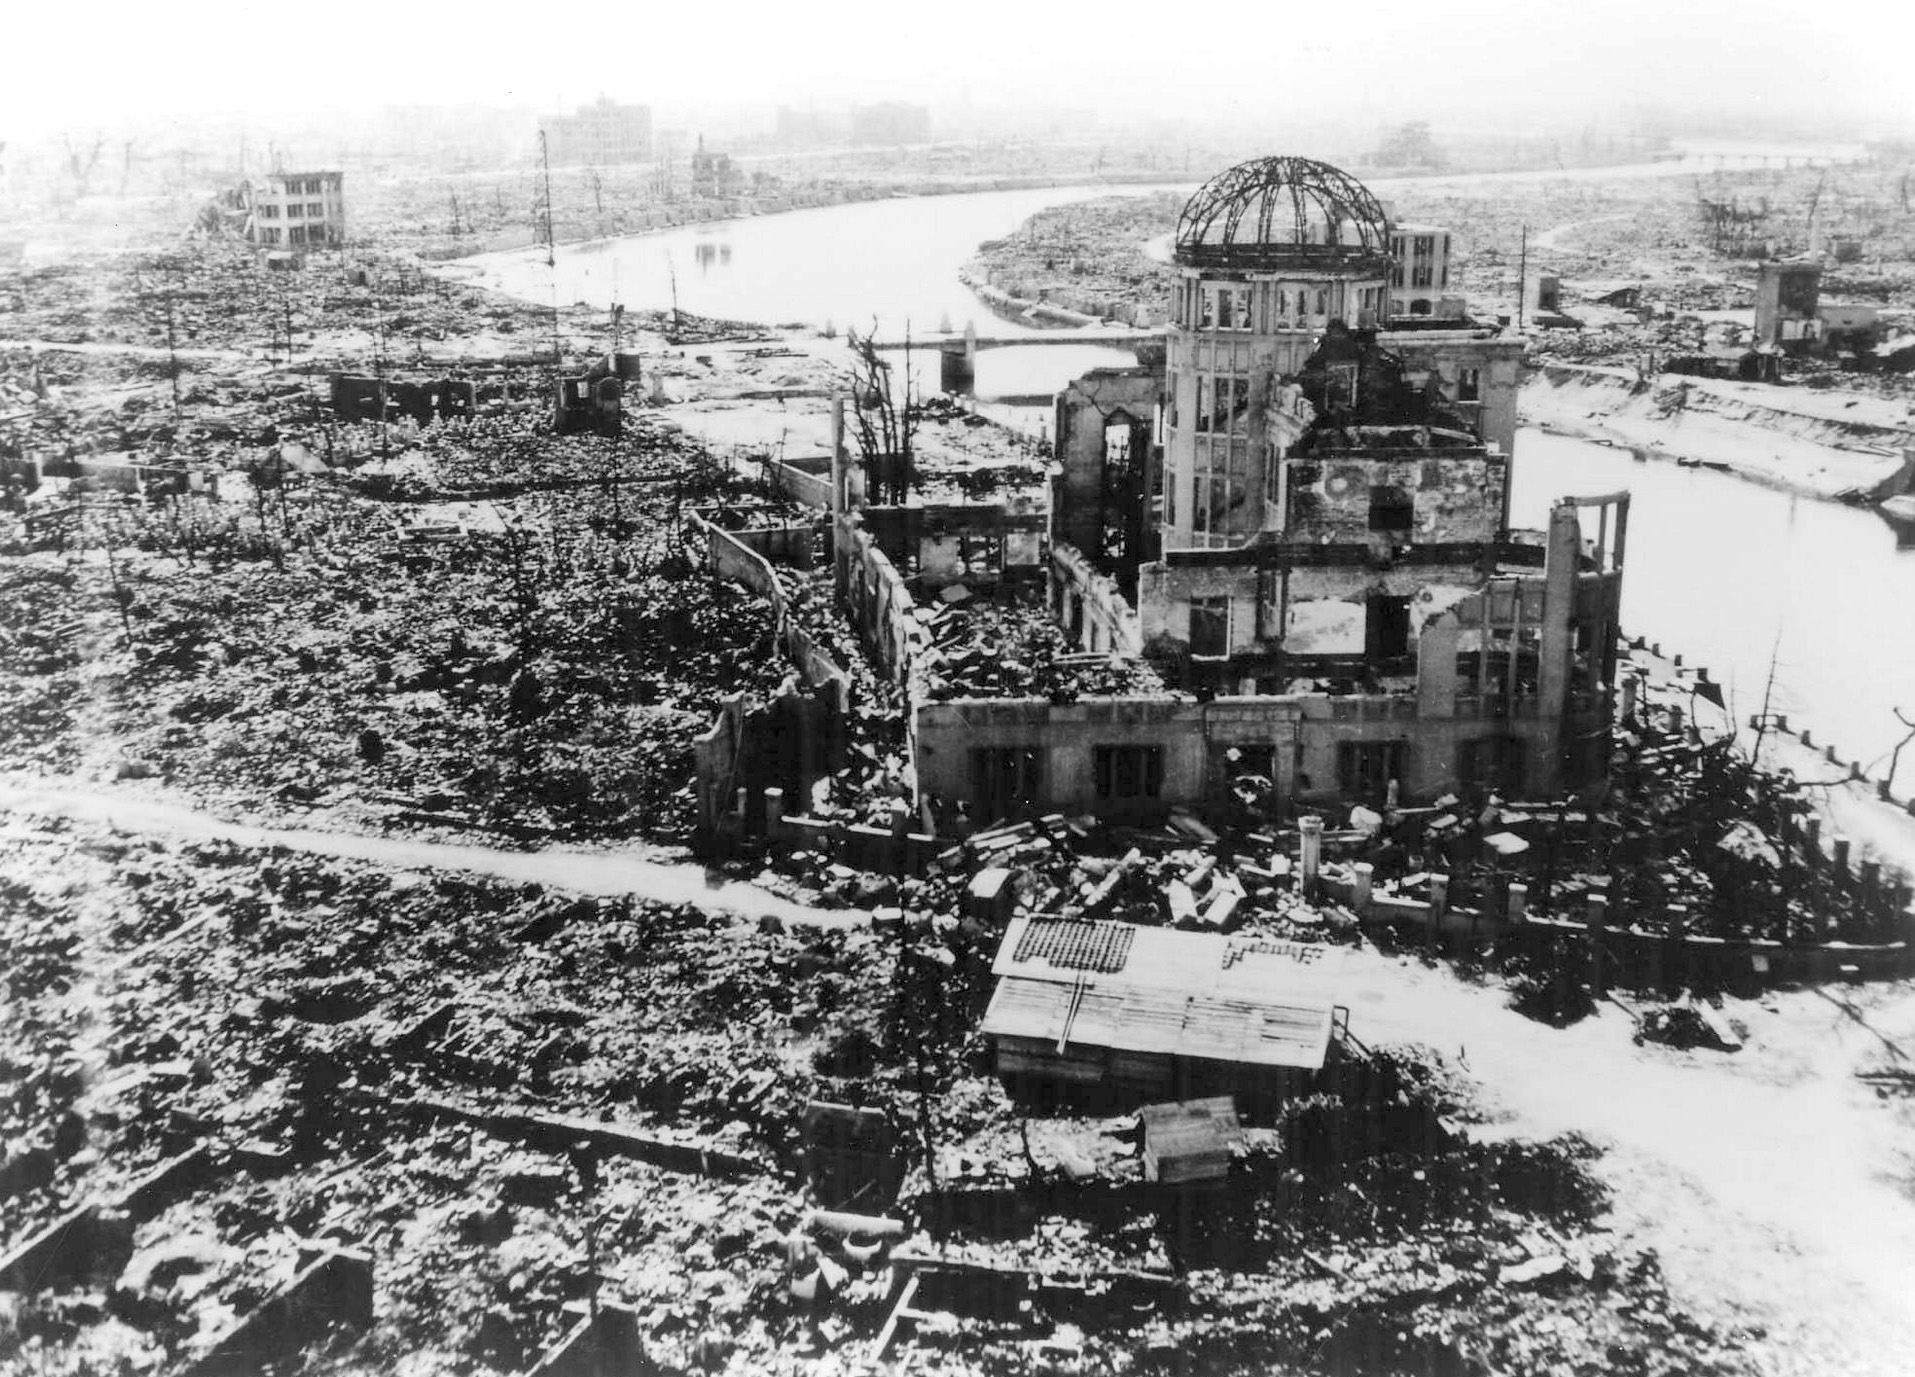 Hiroshima photographed by the US military following the dropping of the atomic bomb that killed over 140,000 people on August 6, 1945. The building, originally the Hiroshima Prefectural Industrial Promotion Hall, was just160 meters northwest of the hypocentre. The skeletal structure of the dome standing above the citiy's ruins was a conspicuous landmark and has now became known officially as the A-bomb Dome. Credit: Hiroshima Peace Memorial Museum.